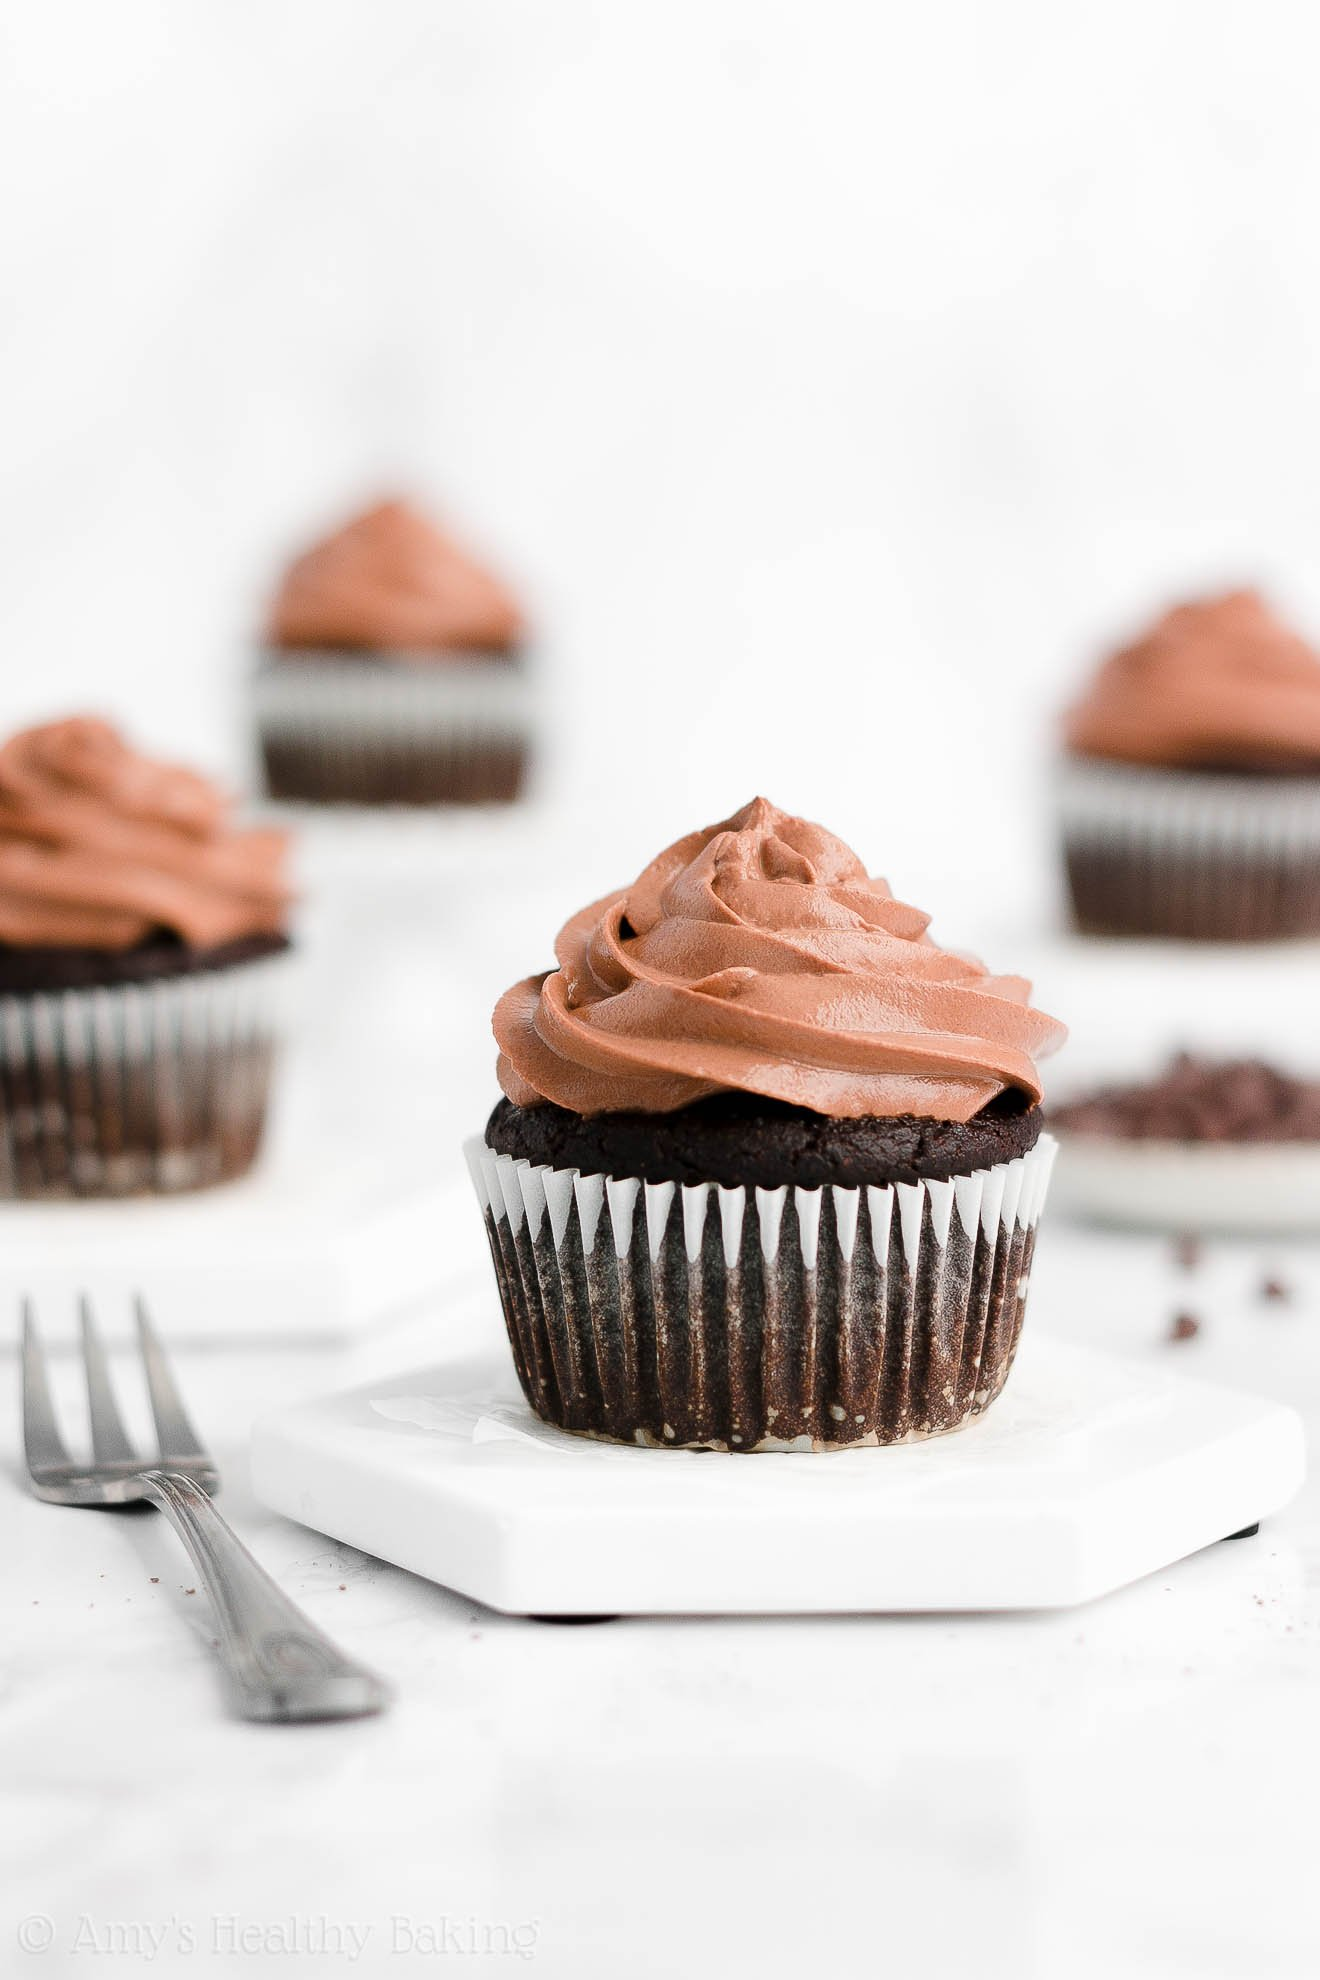 Best Easy Healthy Homemade Super Moist One-Bowl Dark Chocolate Cupcakes